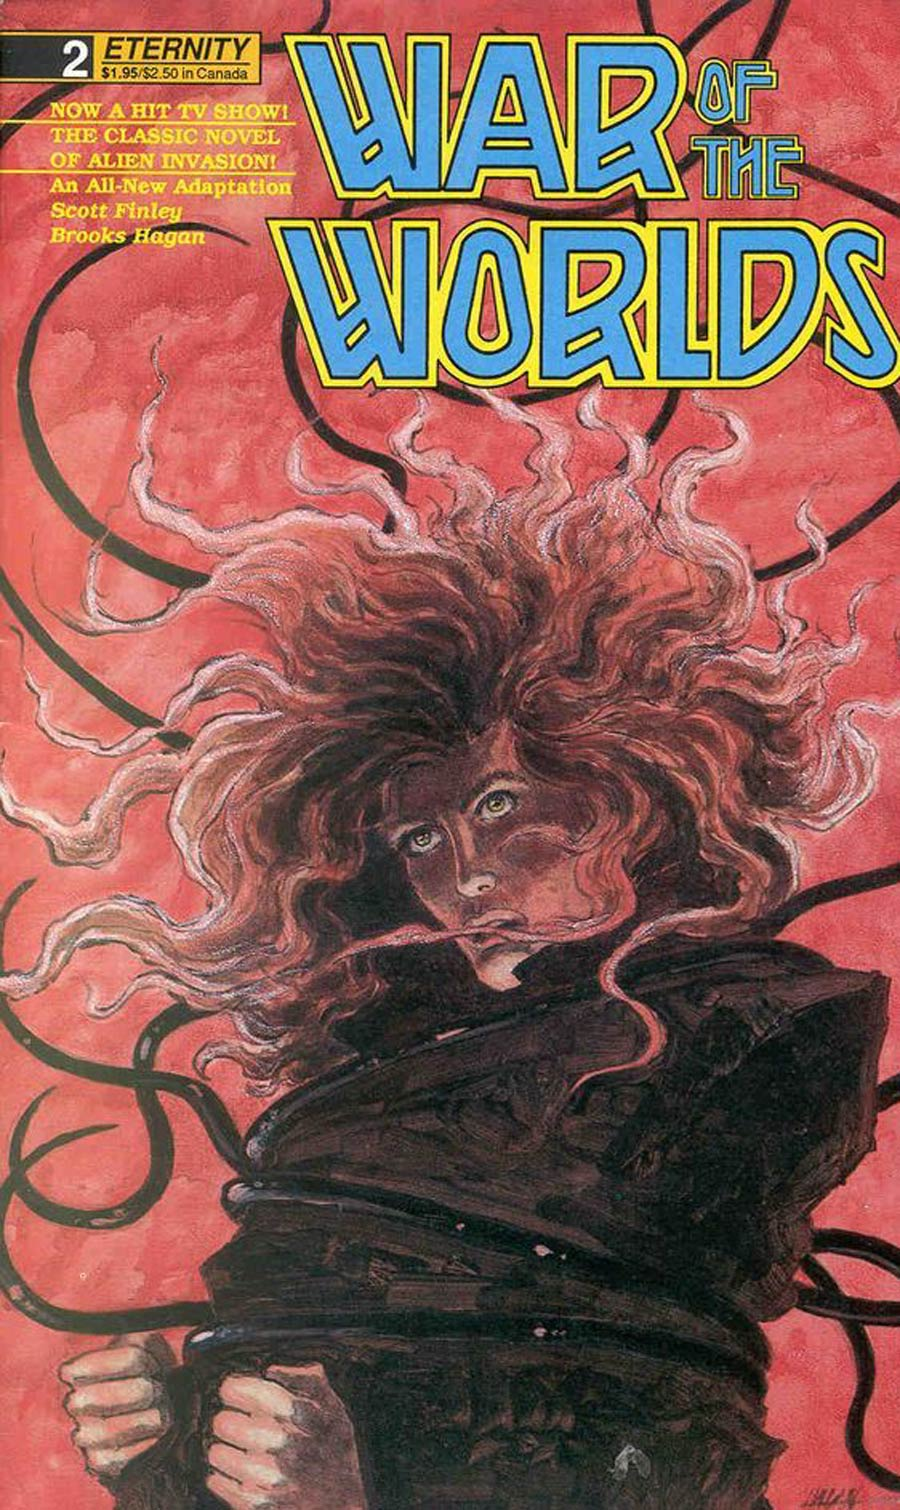 War Of The Worlds (Eternity) #2